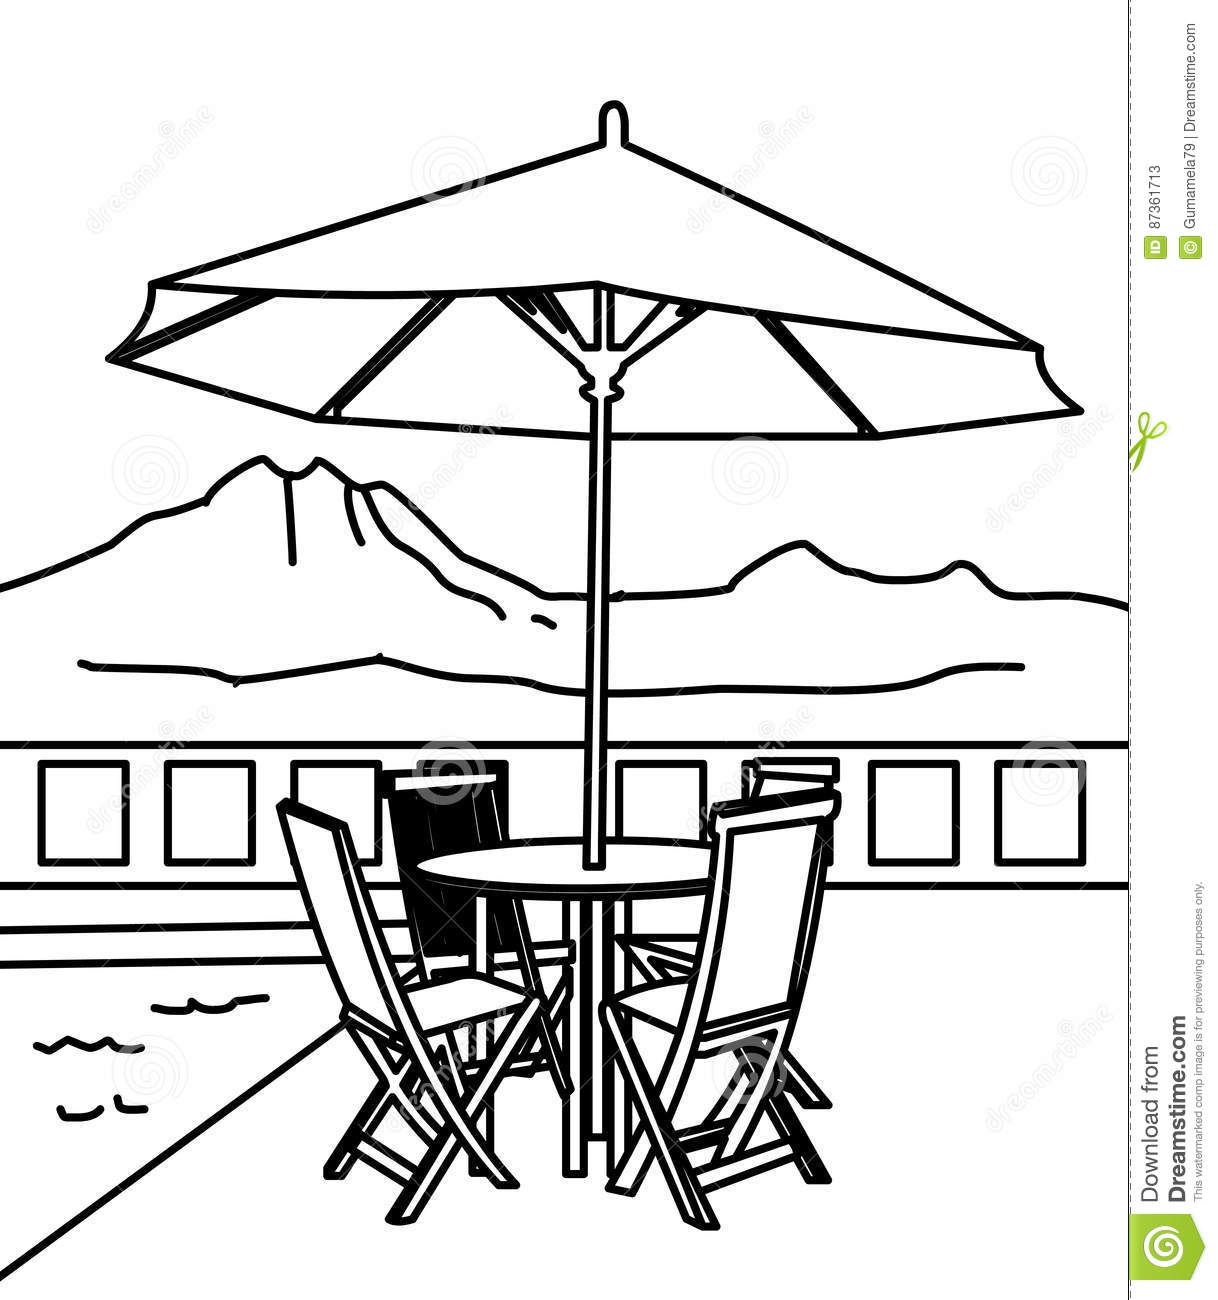 beach umbrella and table coloring page stock illustration image